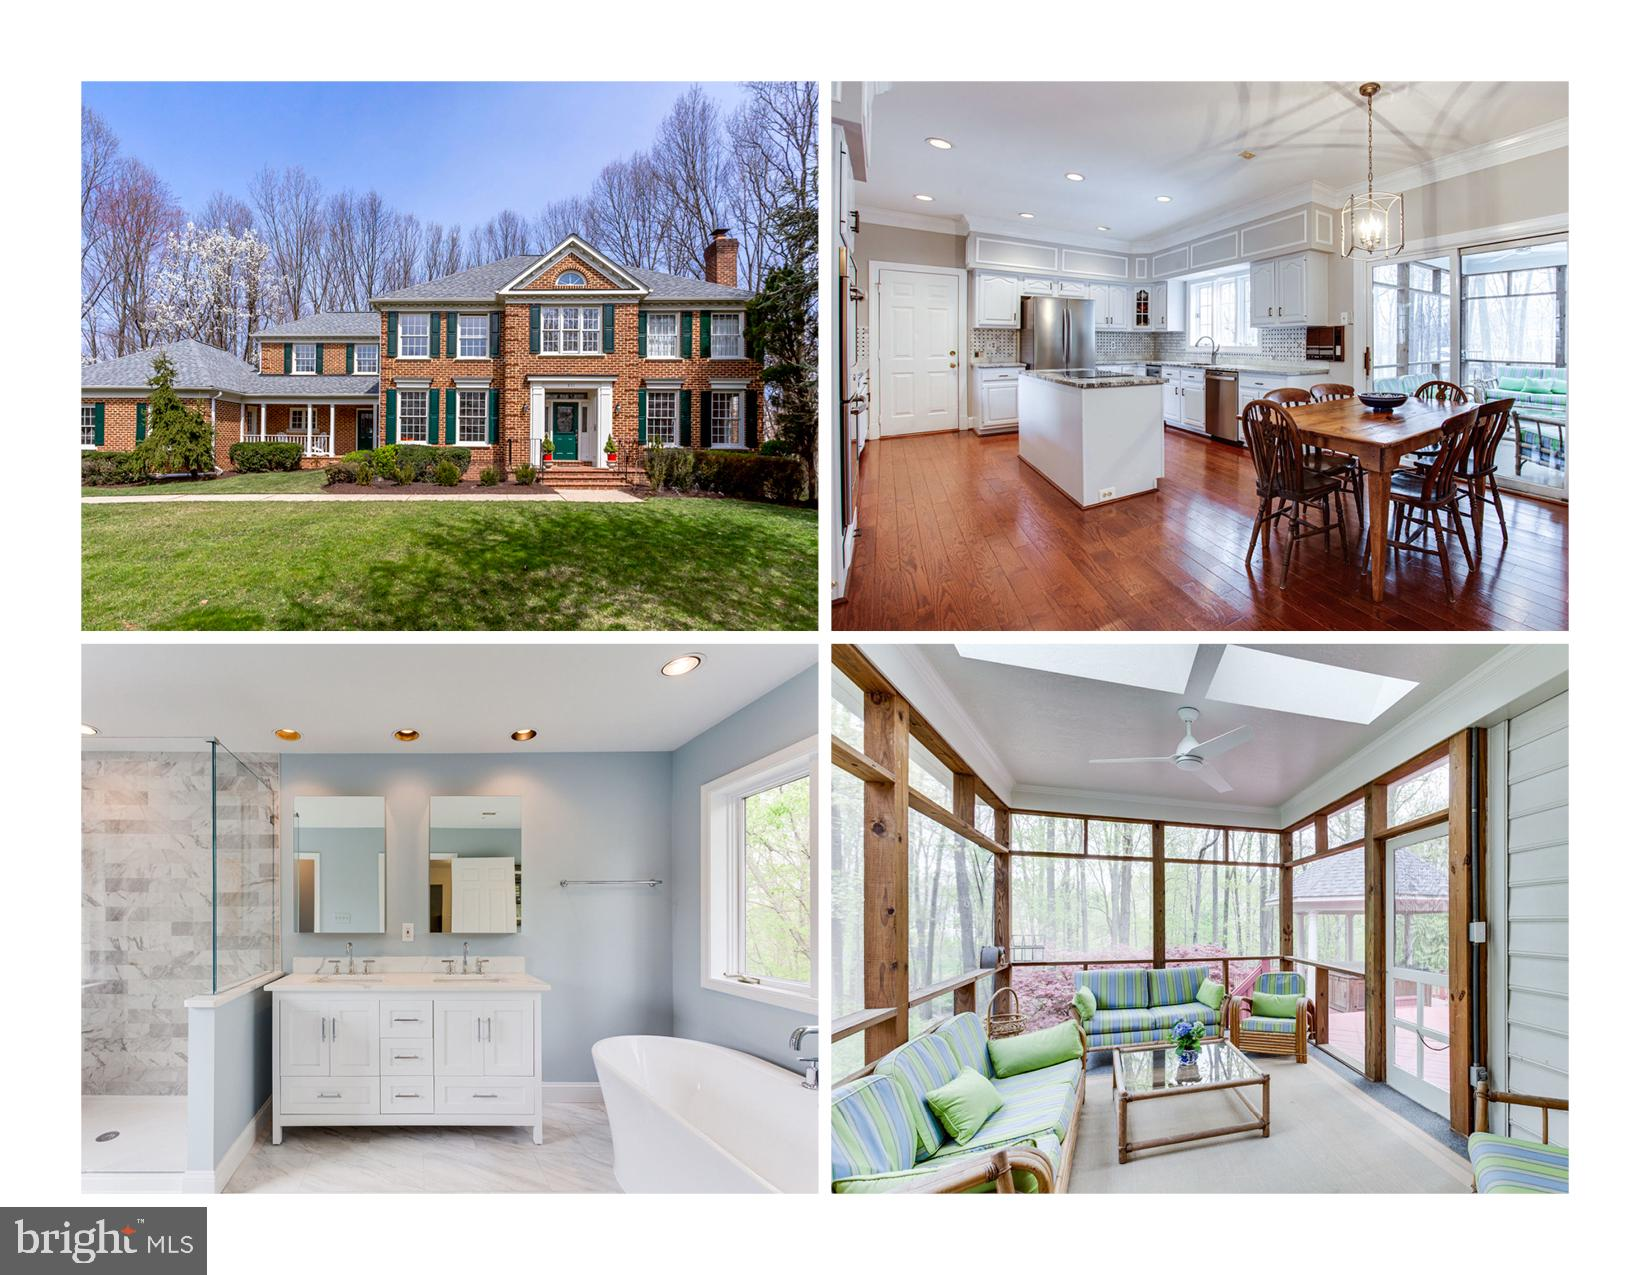 Lovely brick colonial with the perfect balance of classic charm and modern comfort in a private wood